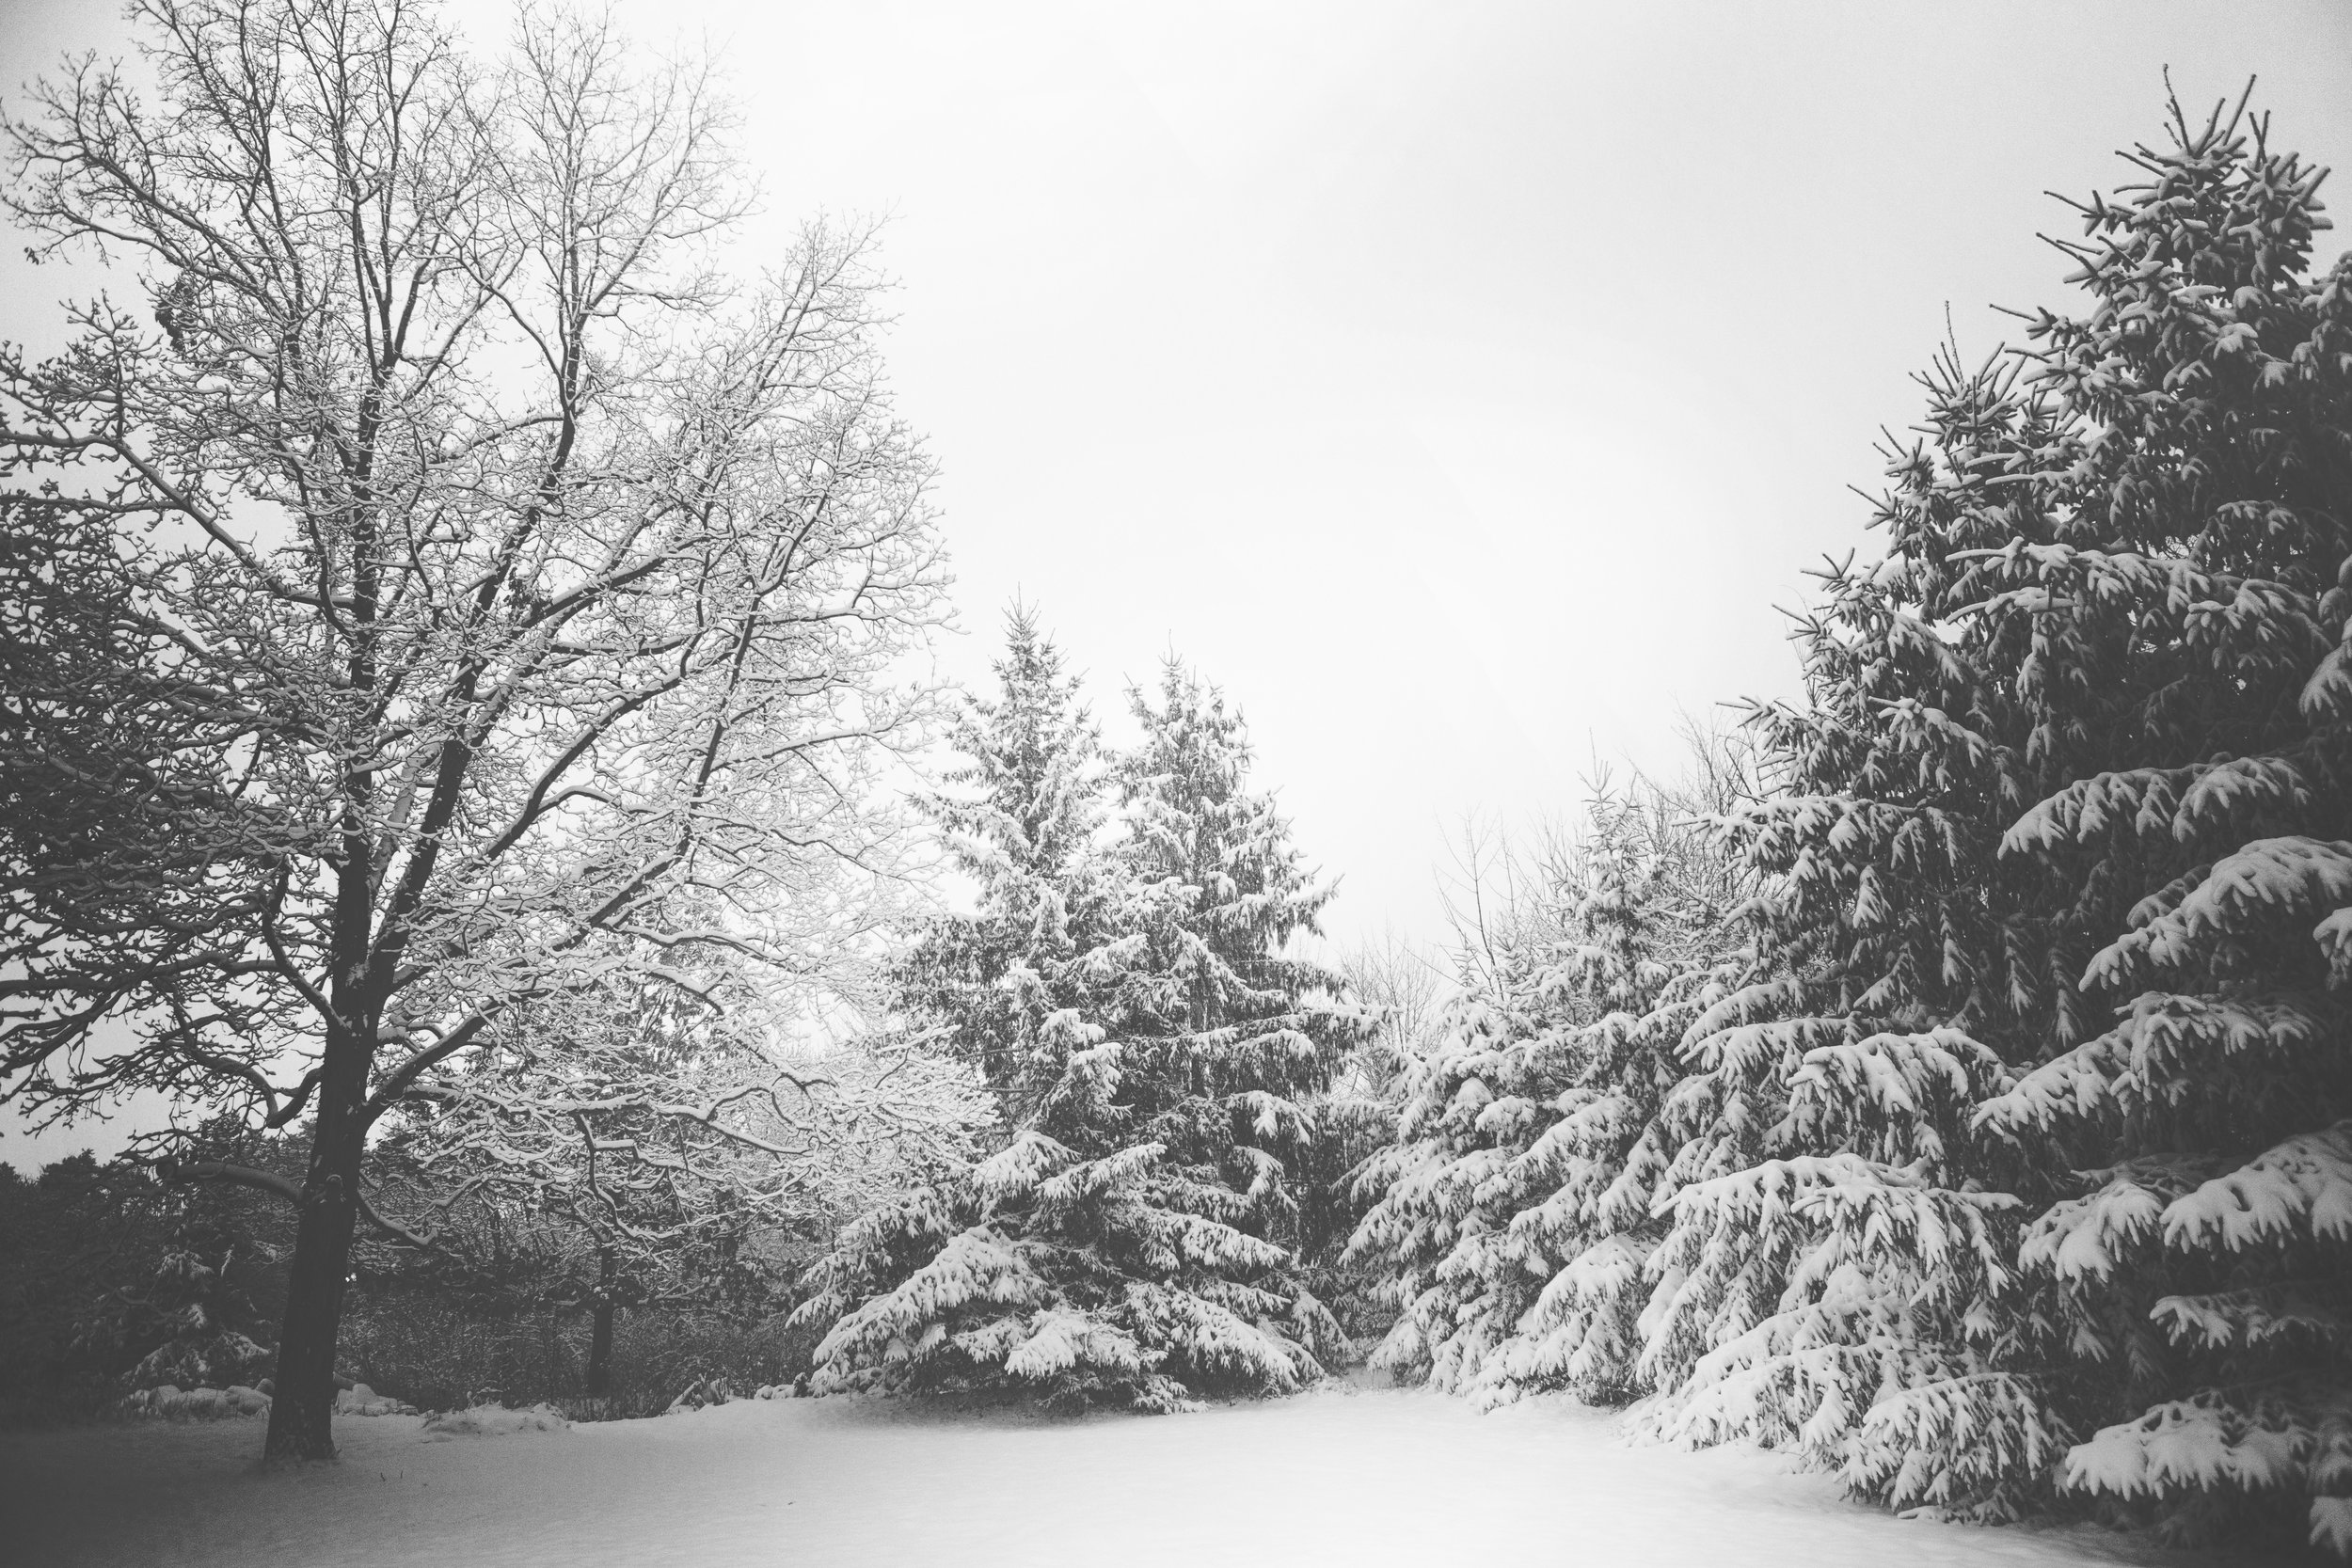 snow-landscape-trees-winter.jpg